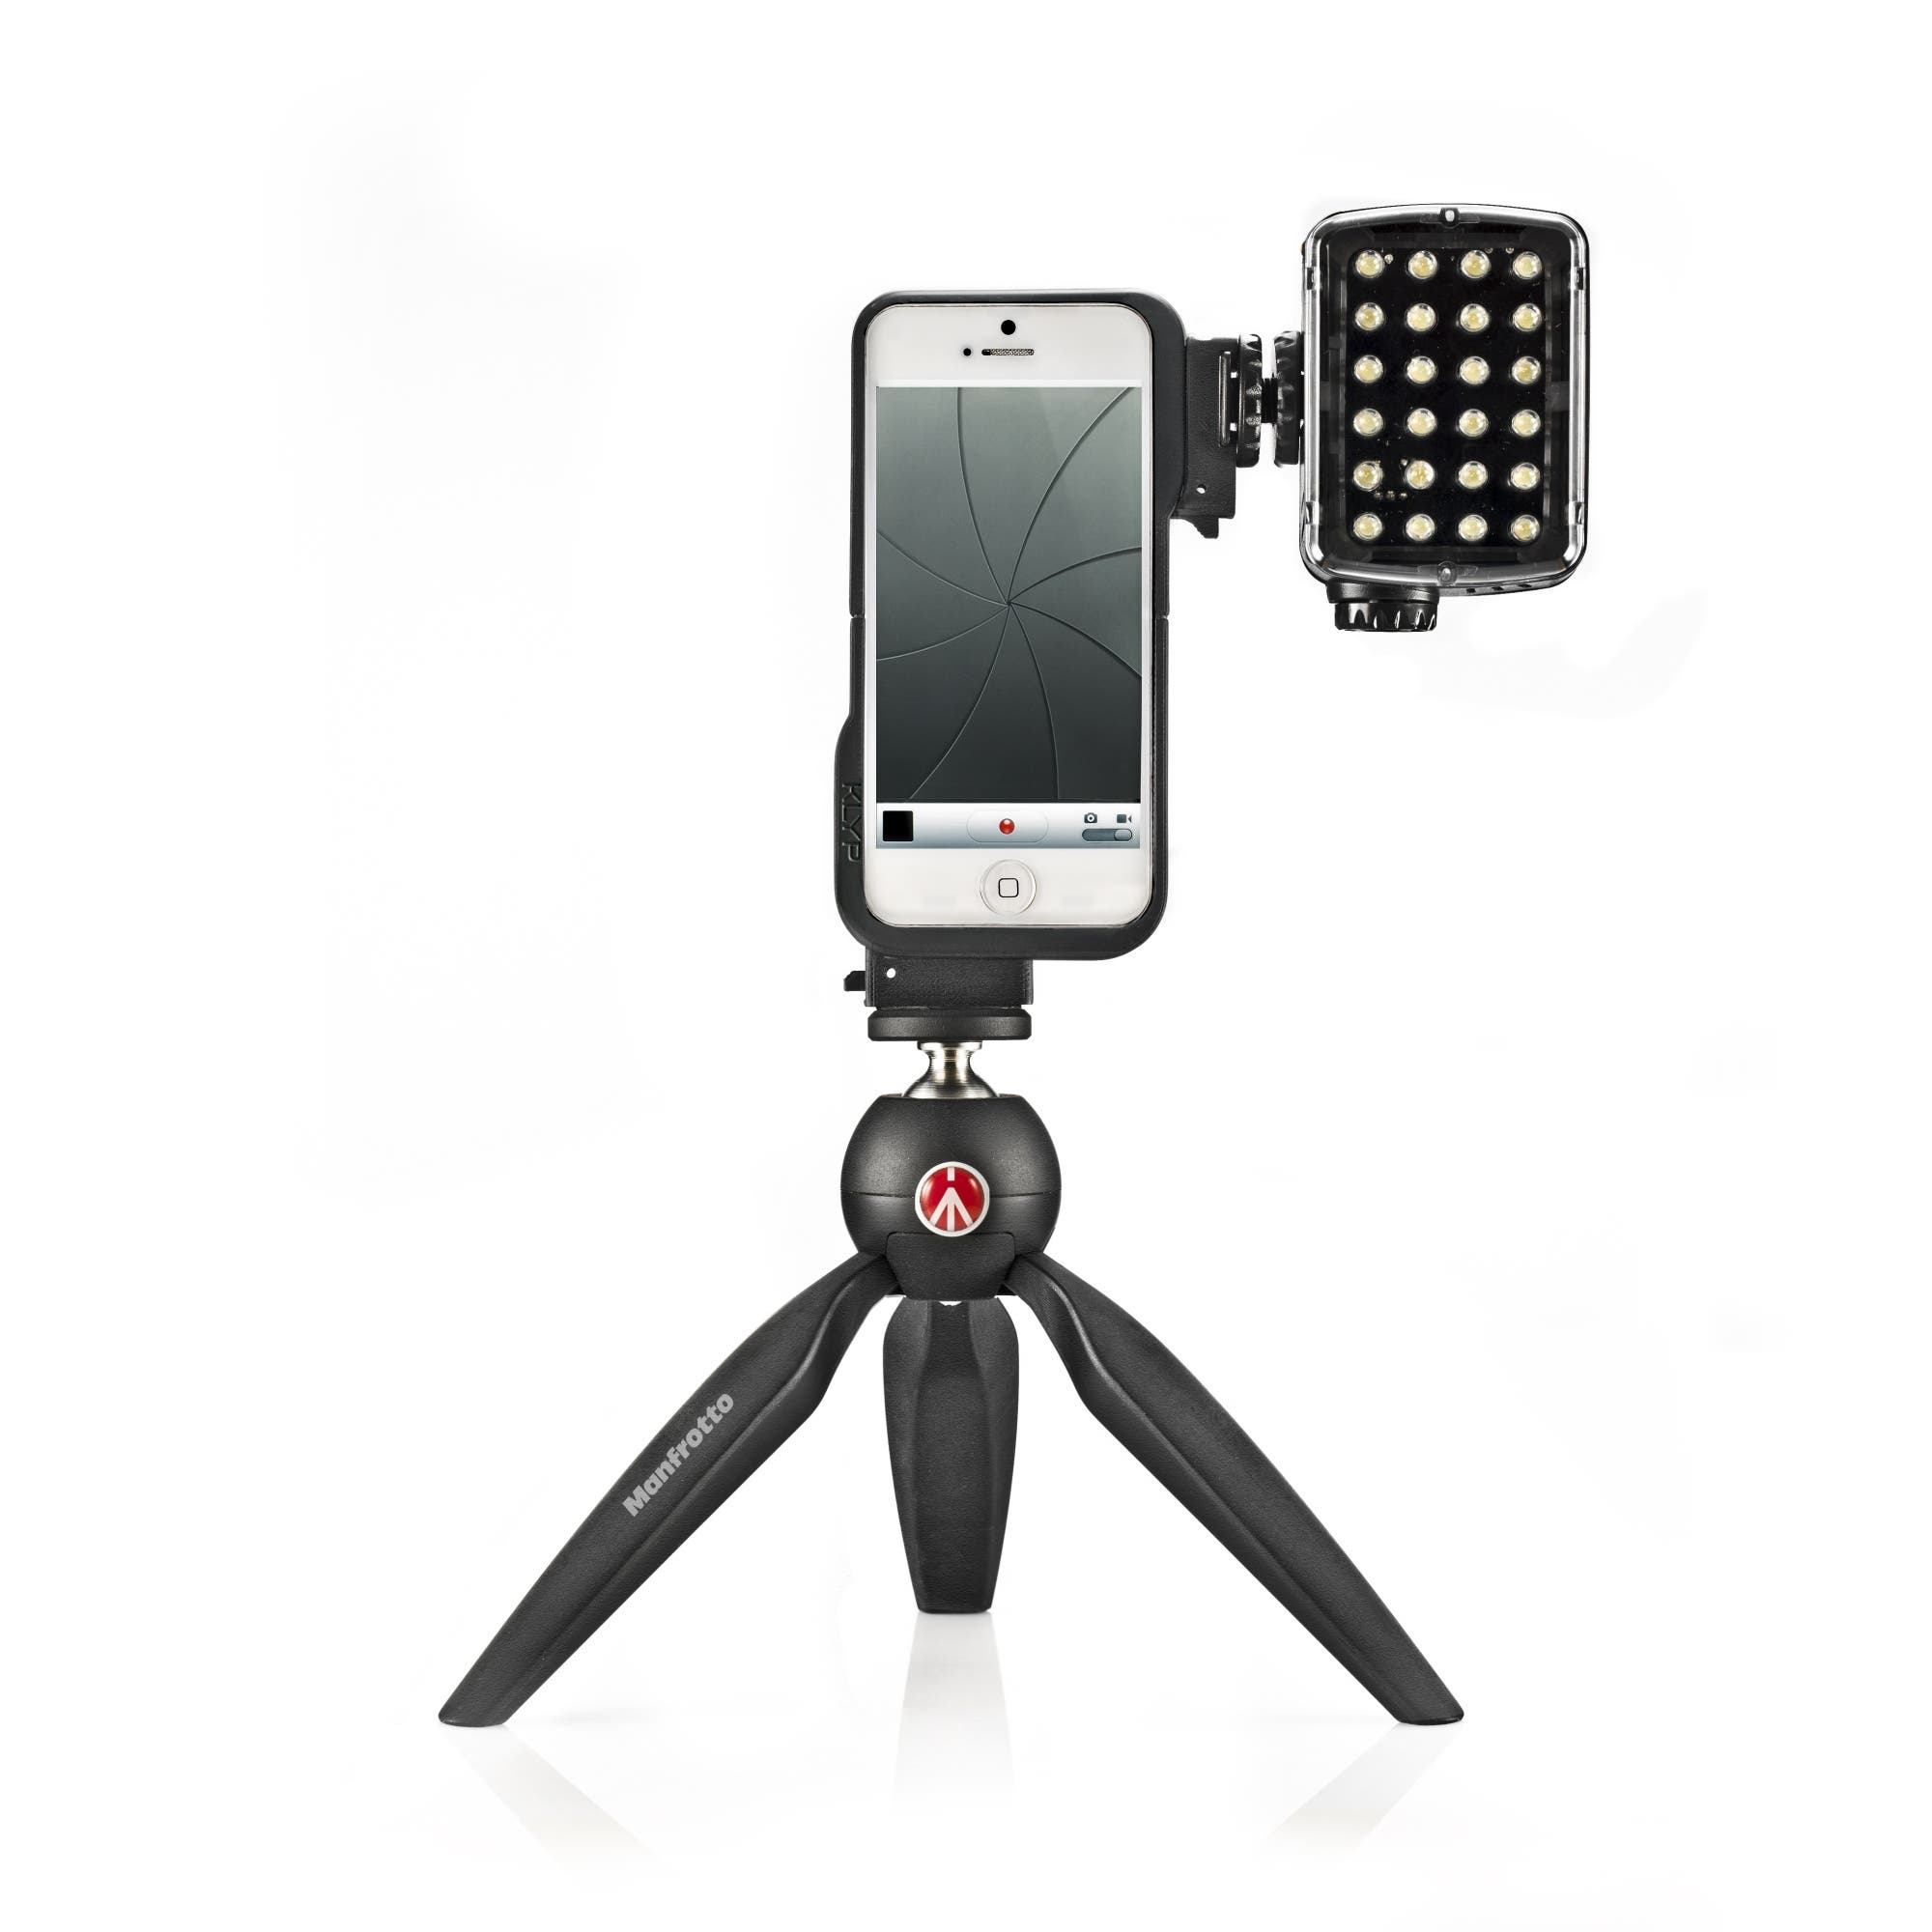 Manfrotto Announces KLYP Case and KLYPAPP for iPhone 4/4S/5